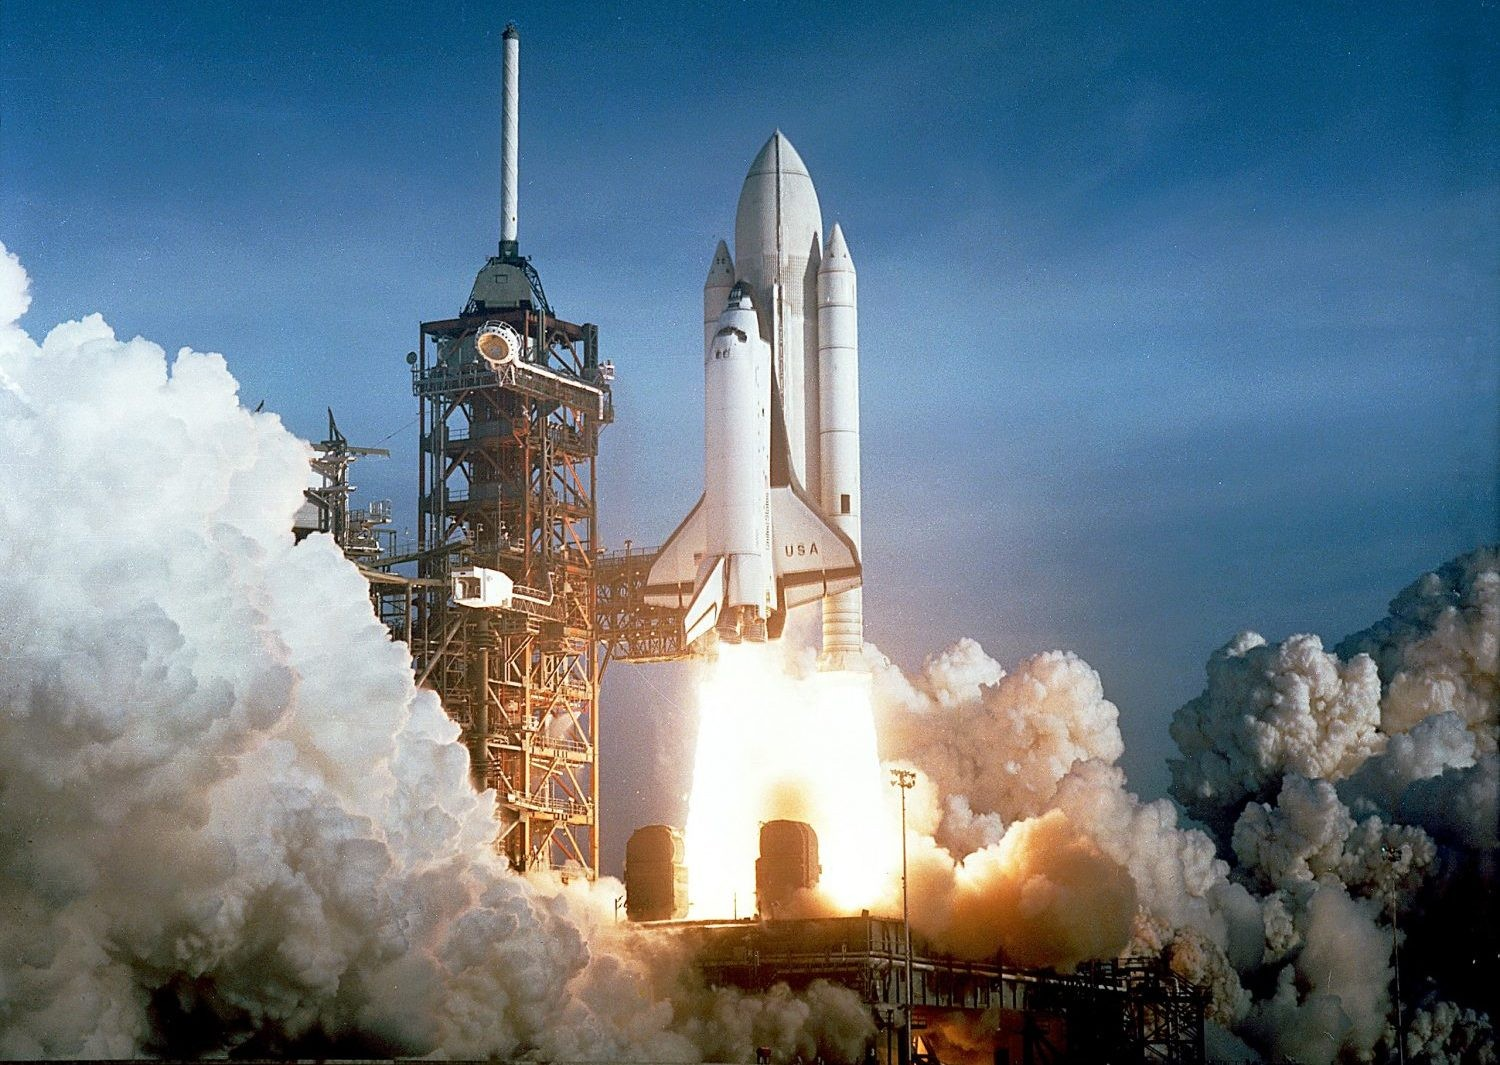 Space Shuttle Columbia during its first launch, 12 April 1981. Credit: NASA